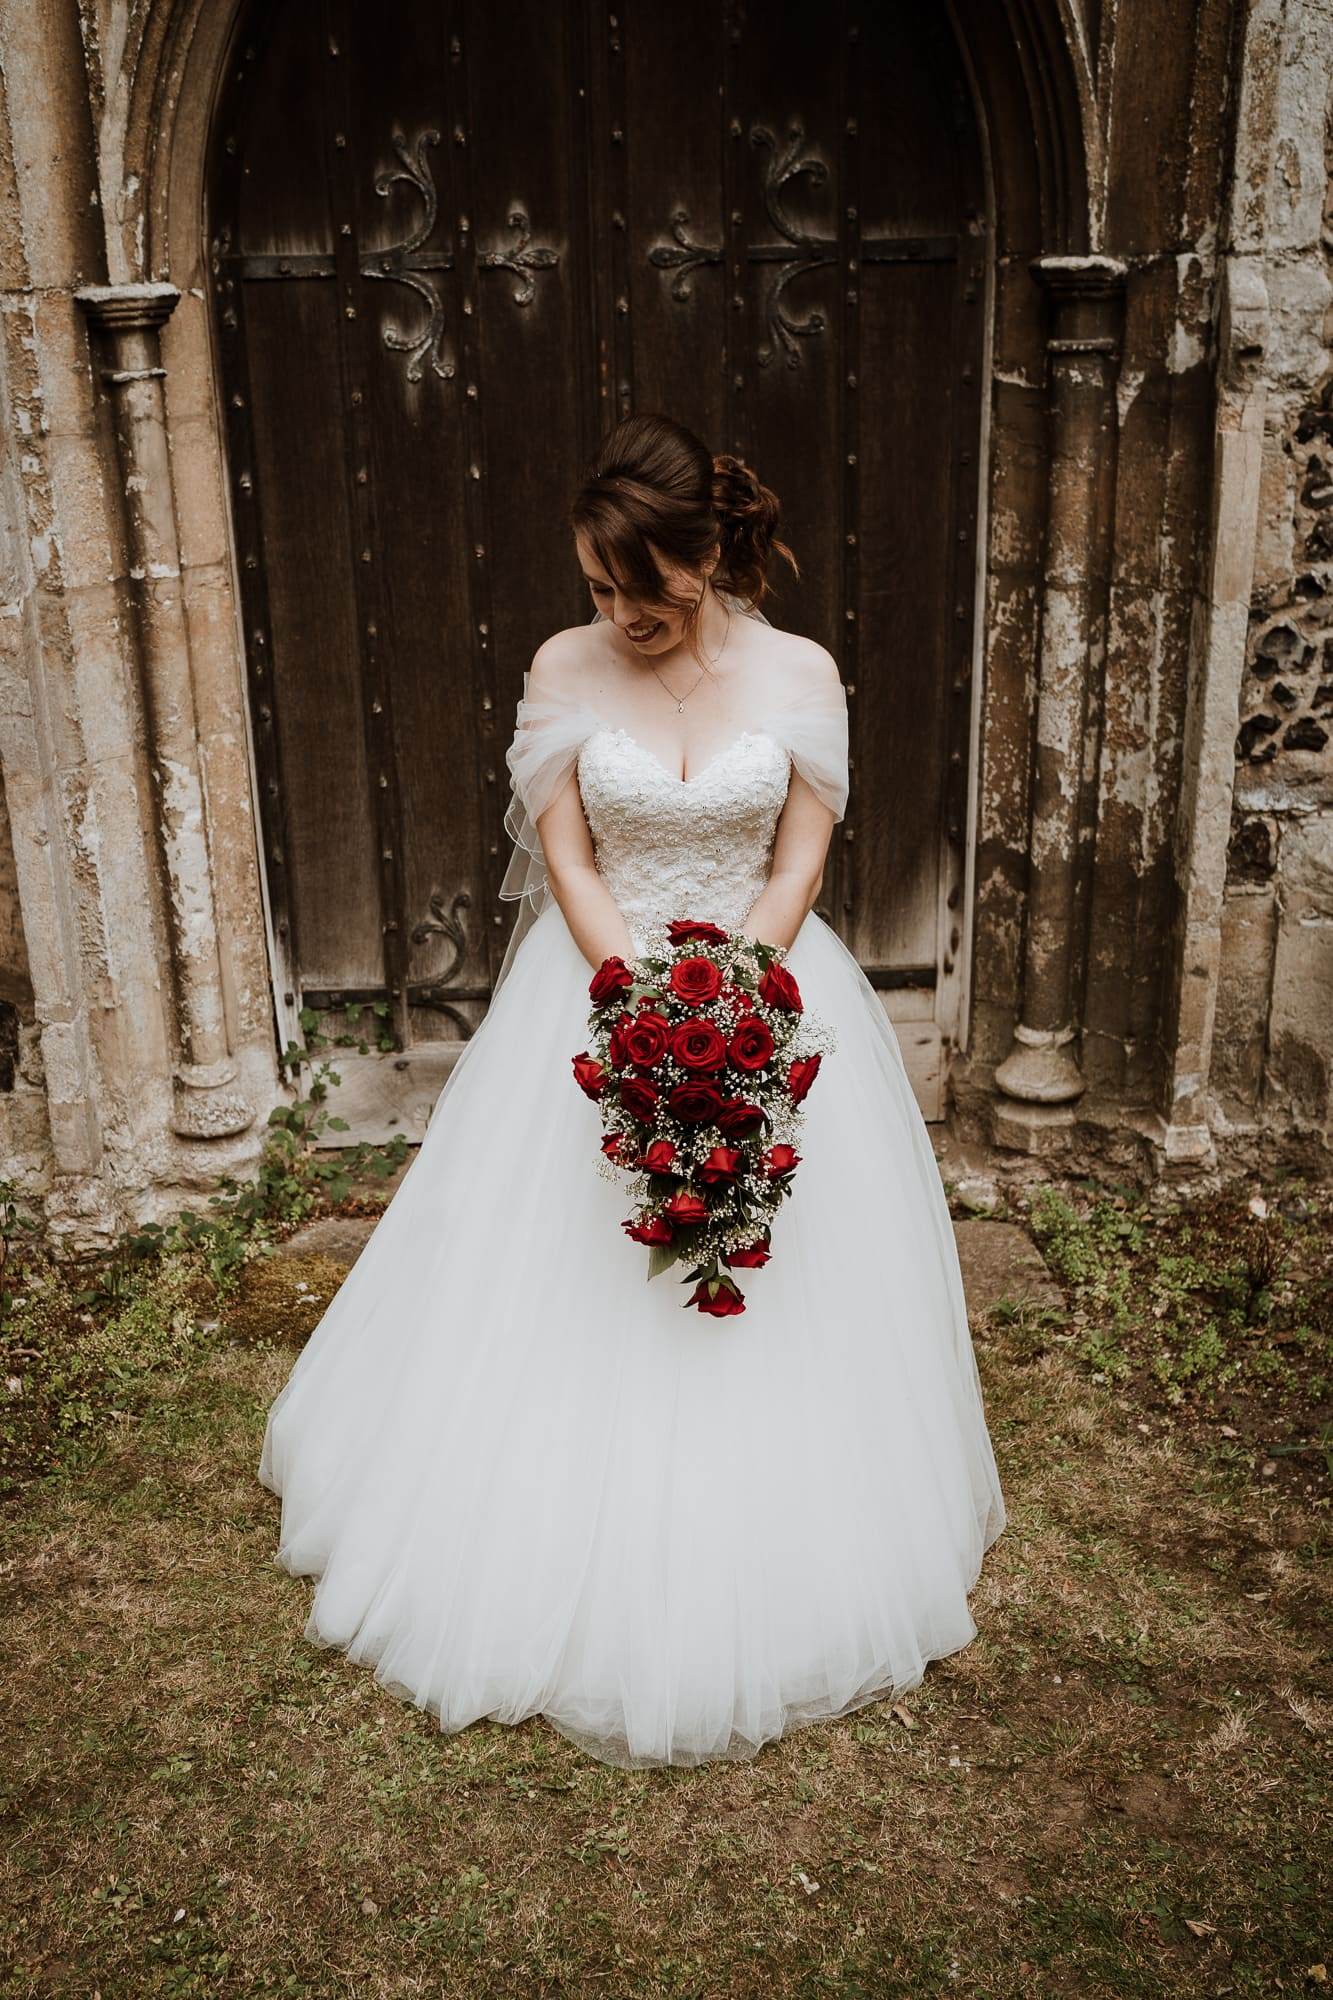 Bride holding her bouquet of red roses